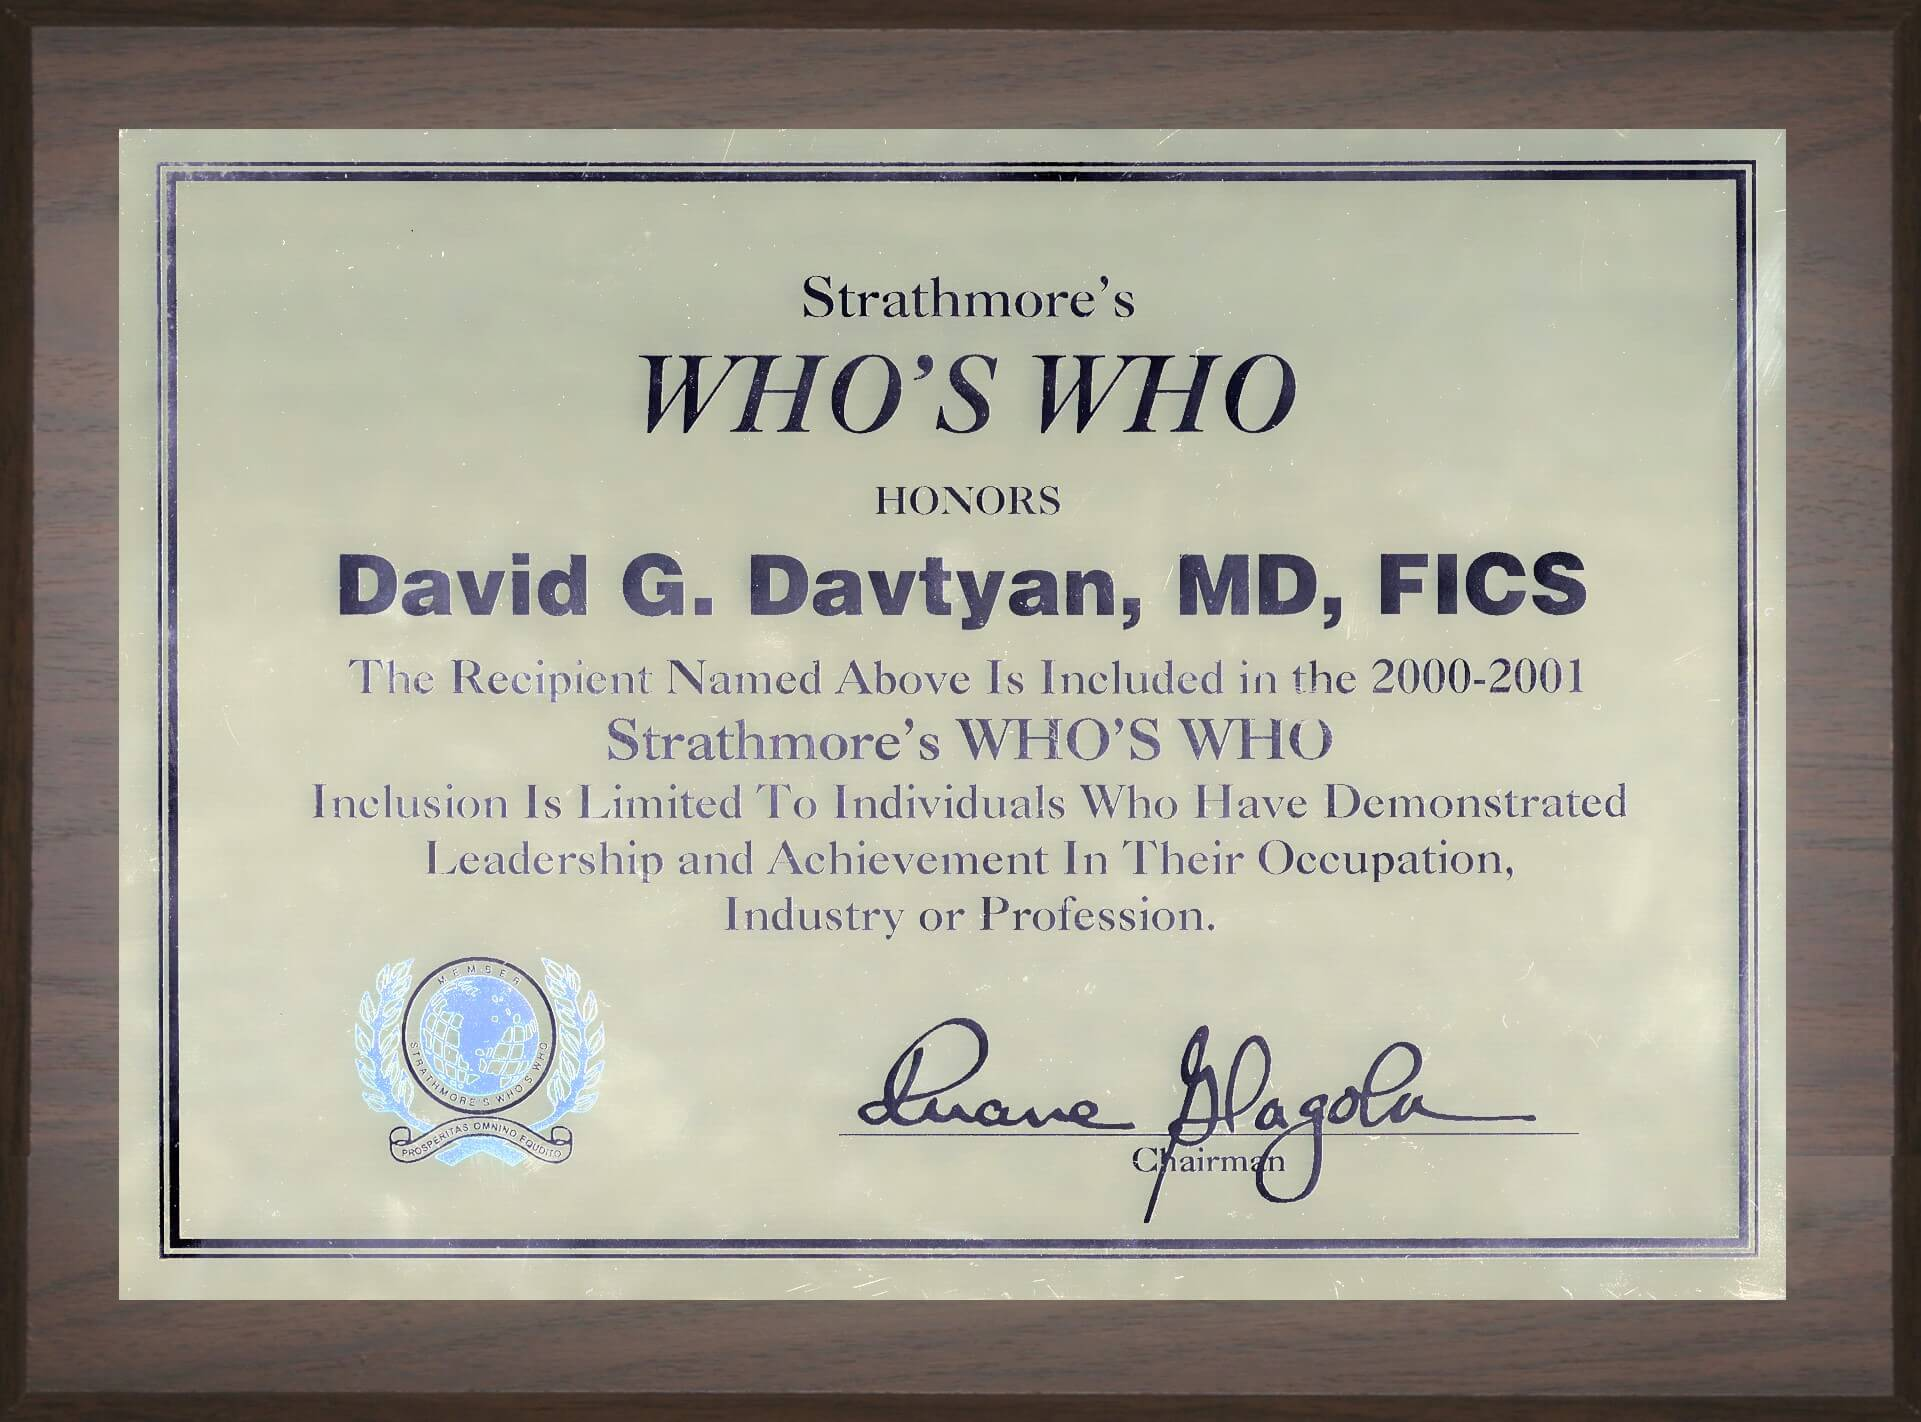 Dr. David Davtyan Strathmore's Who's Who Honors Best Bariatric Weight Loss Surgeon Los Angeles Beverly Hills Glendale Rancho Cucamonga